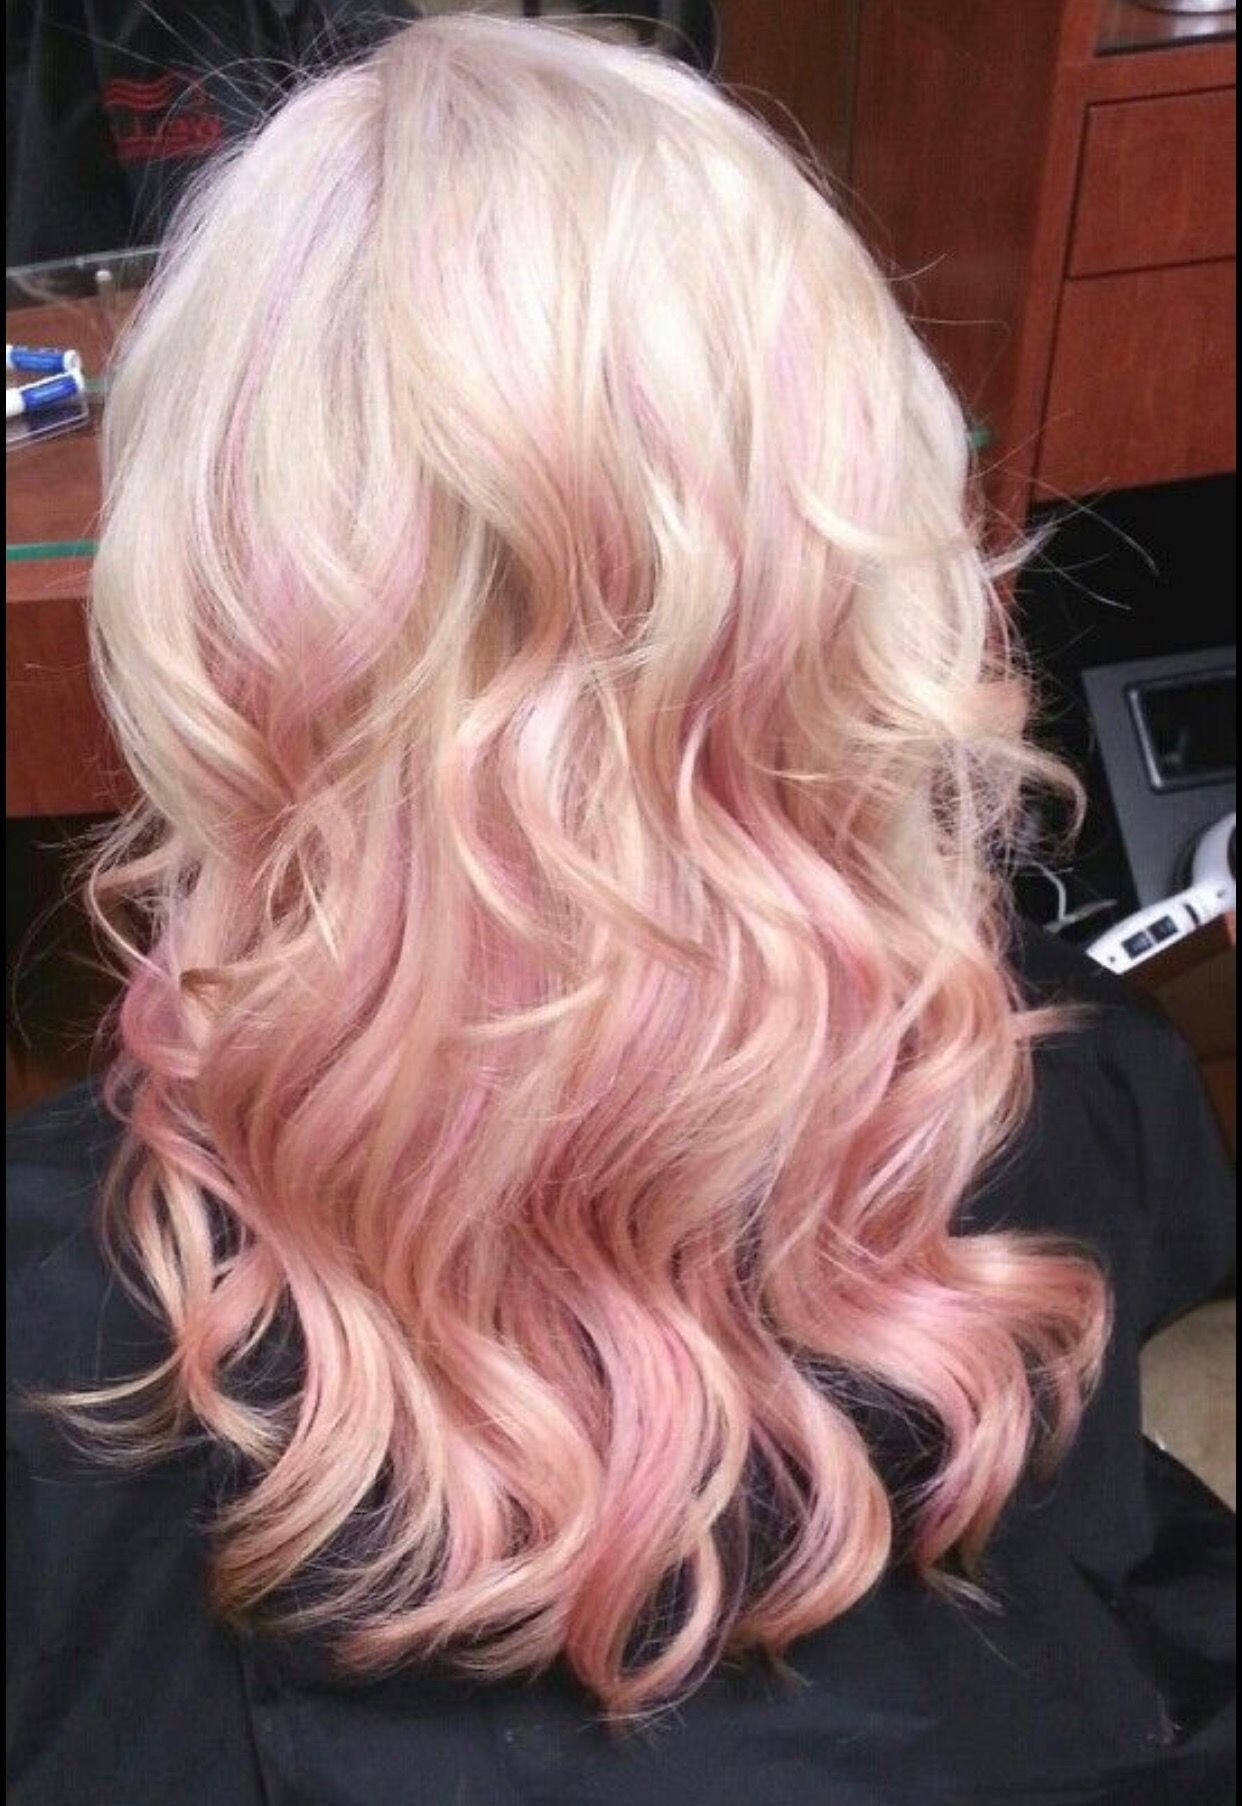 Pin By Melanie Carson On Hair Styles Colors Pastel Hair Highlights Hair Color Pink Blonde Hair With Highlights